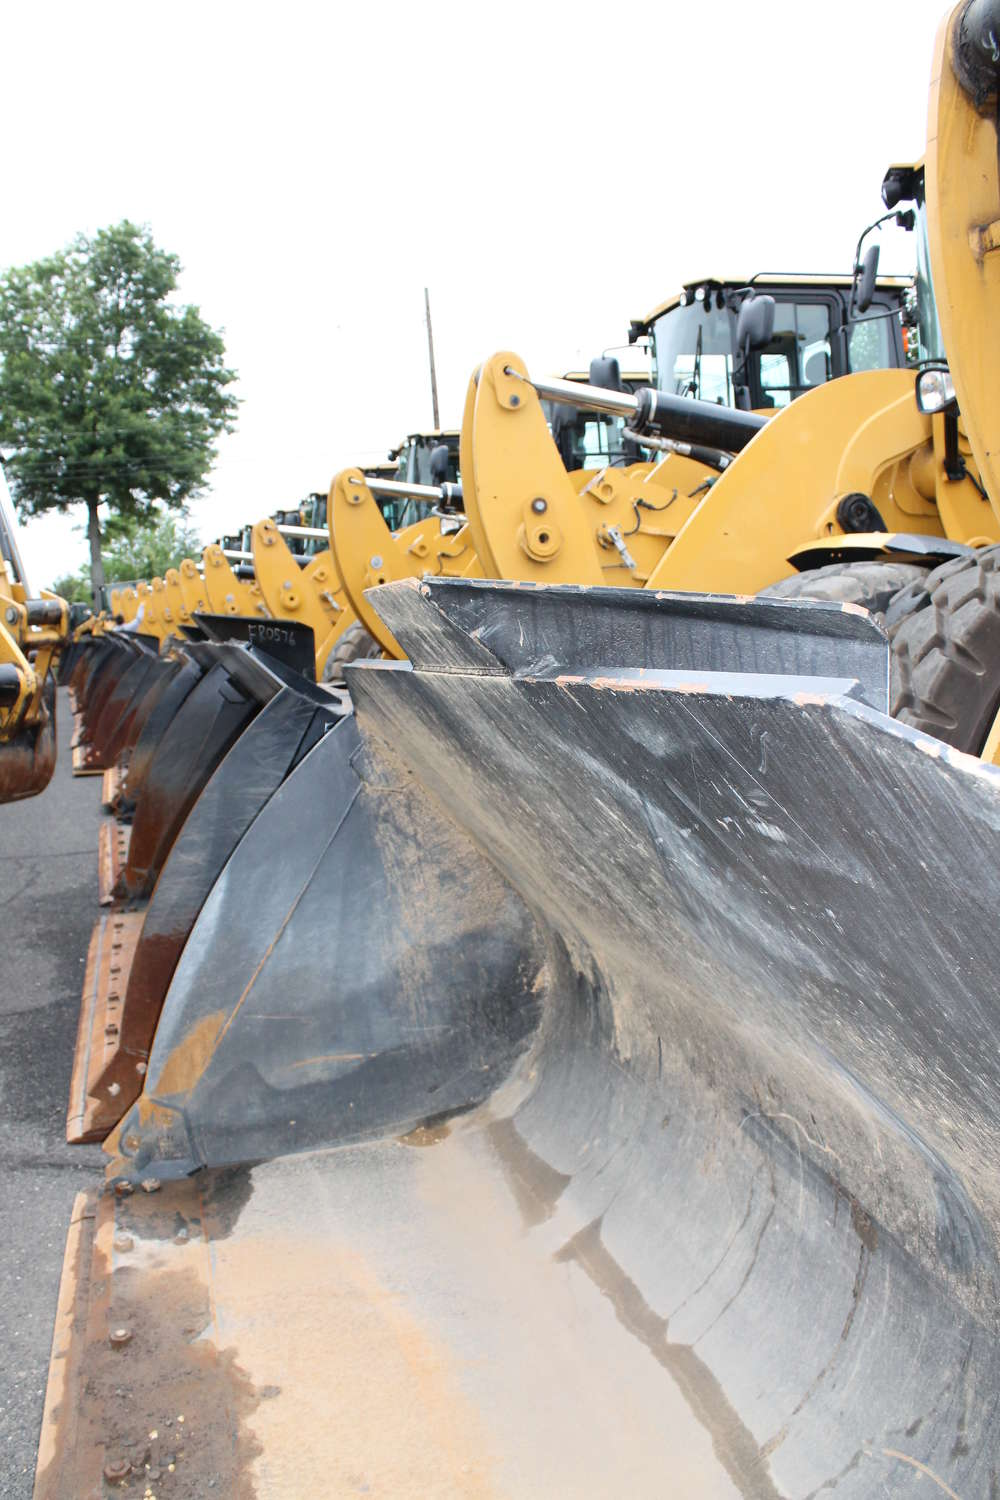 Special pricing on new and used Caterpillar equipment highlighted the One Day Sale event.